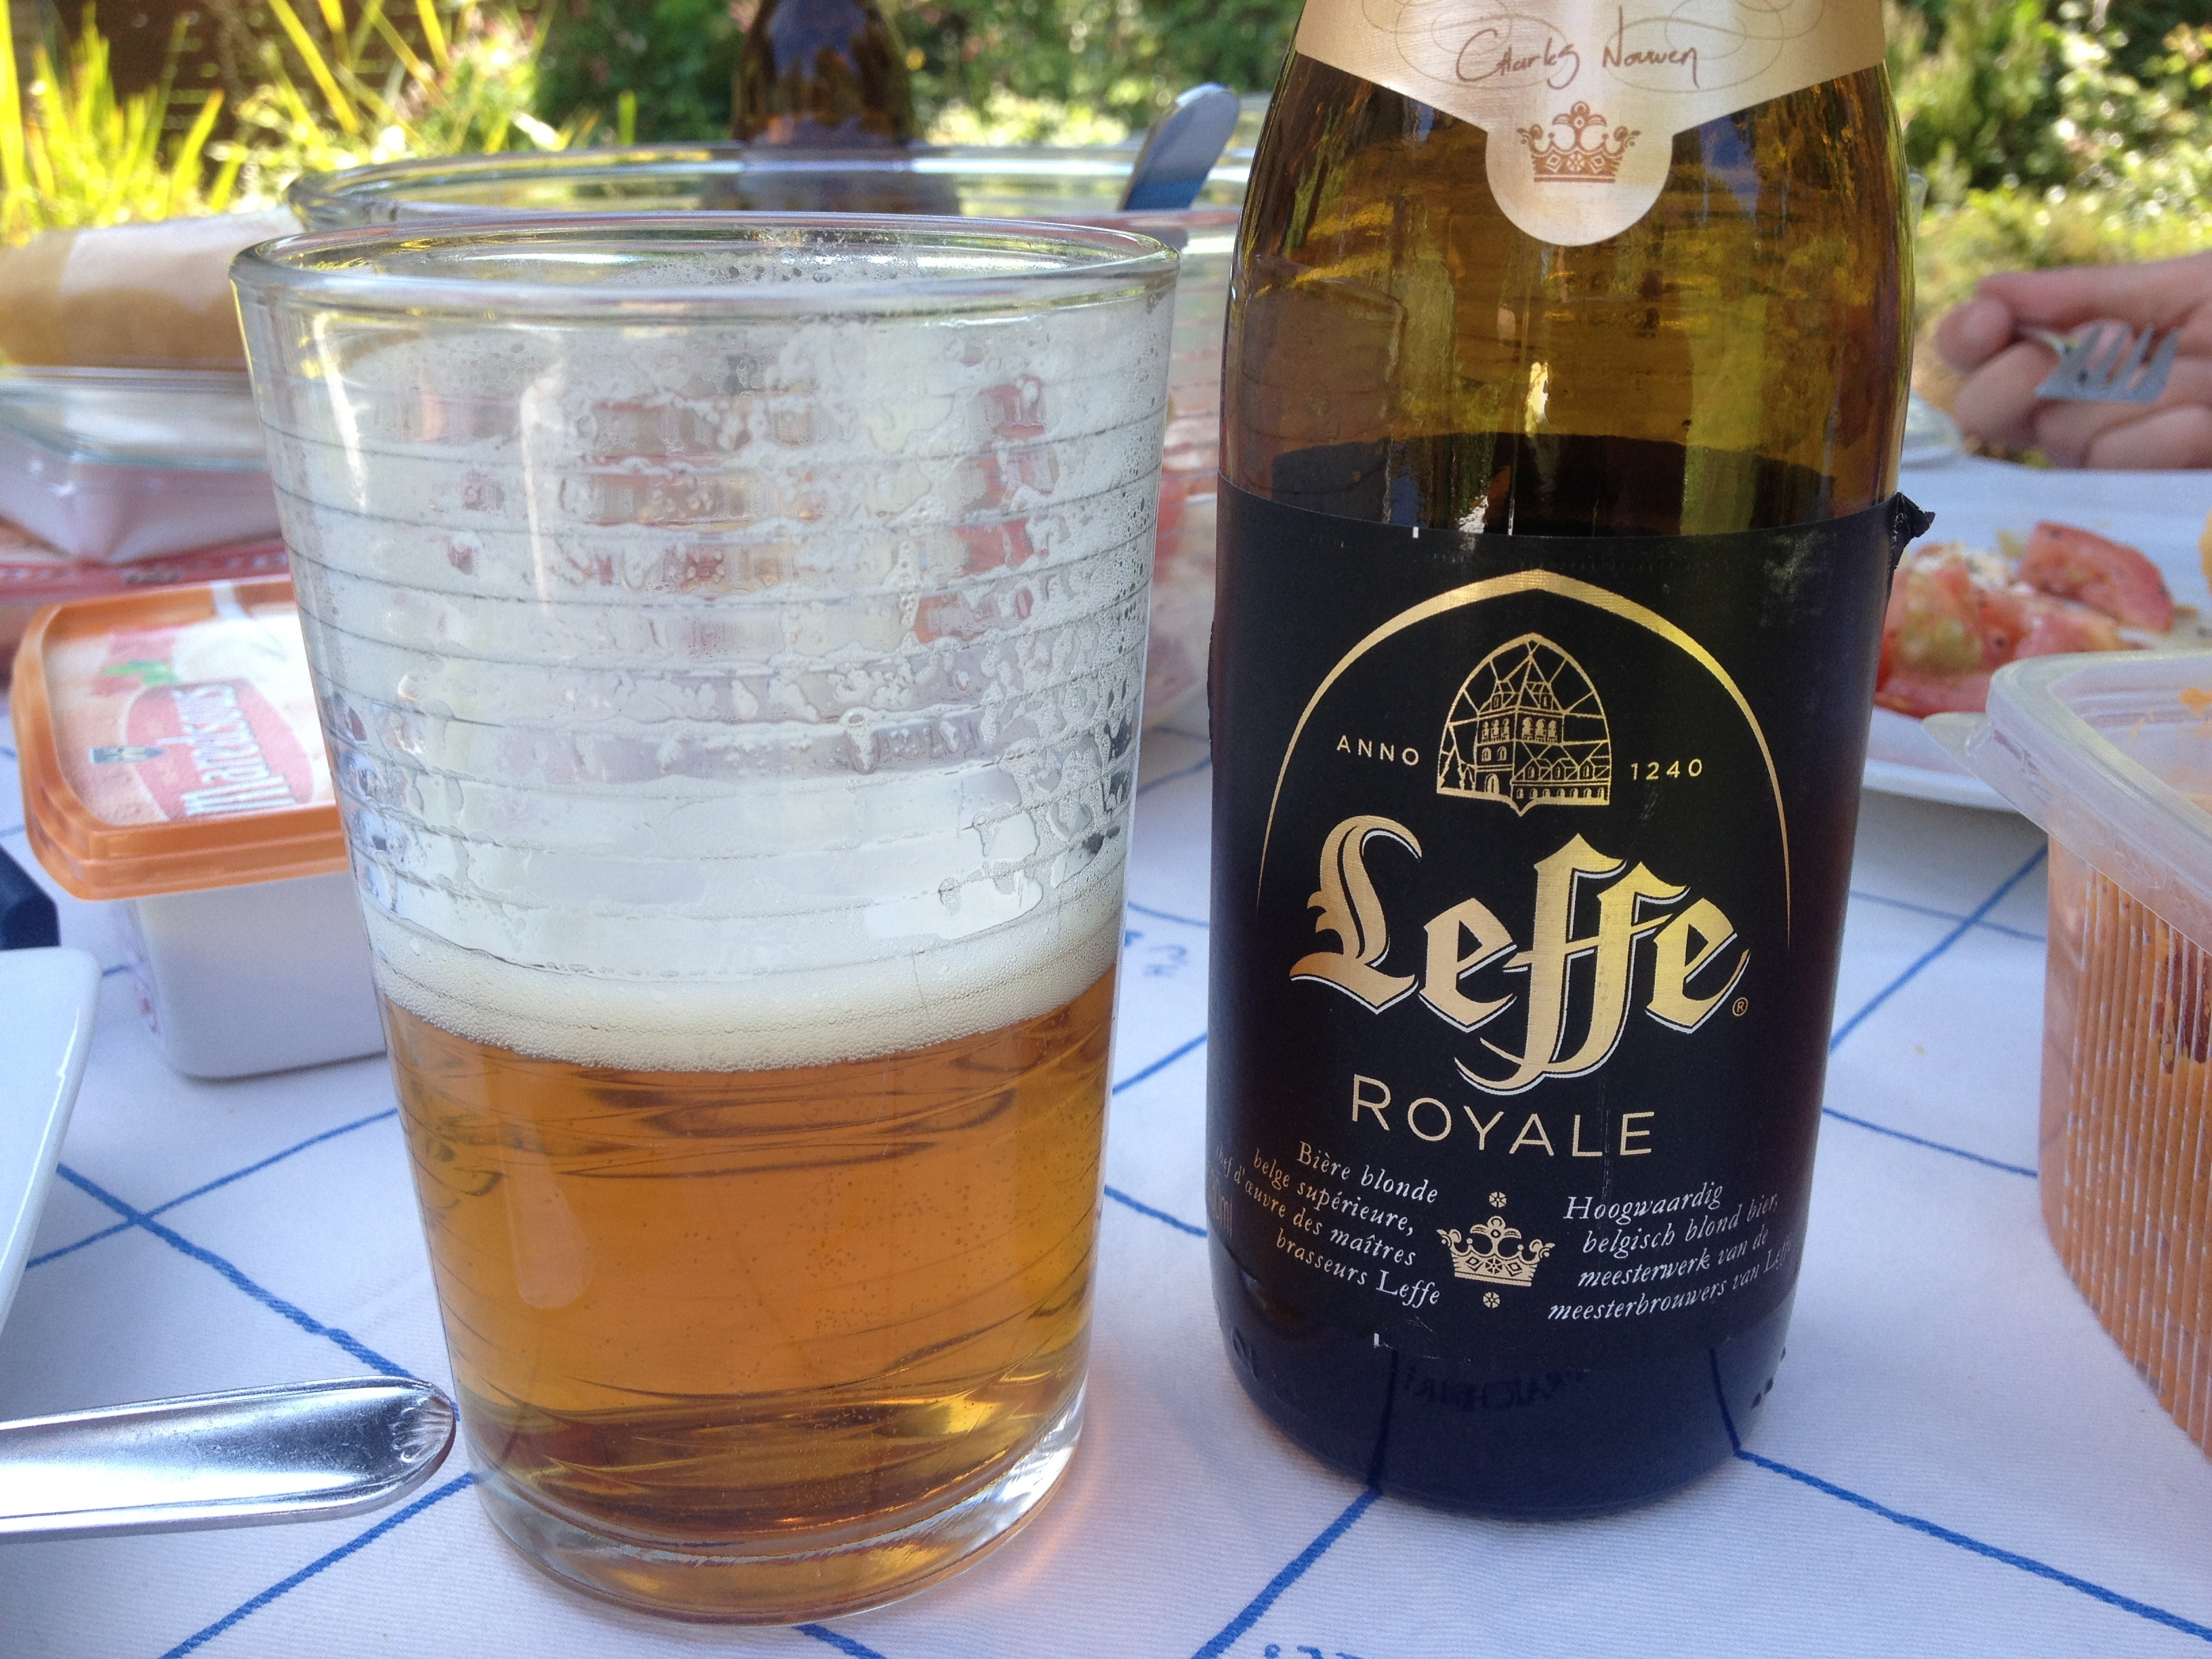 Premium from the Leffe